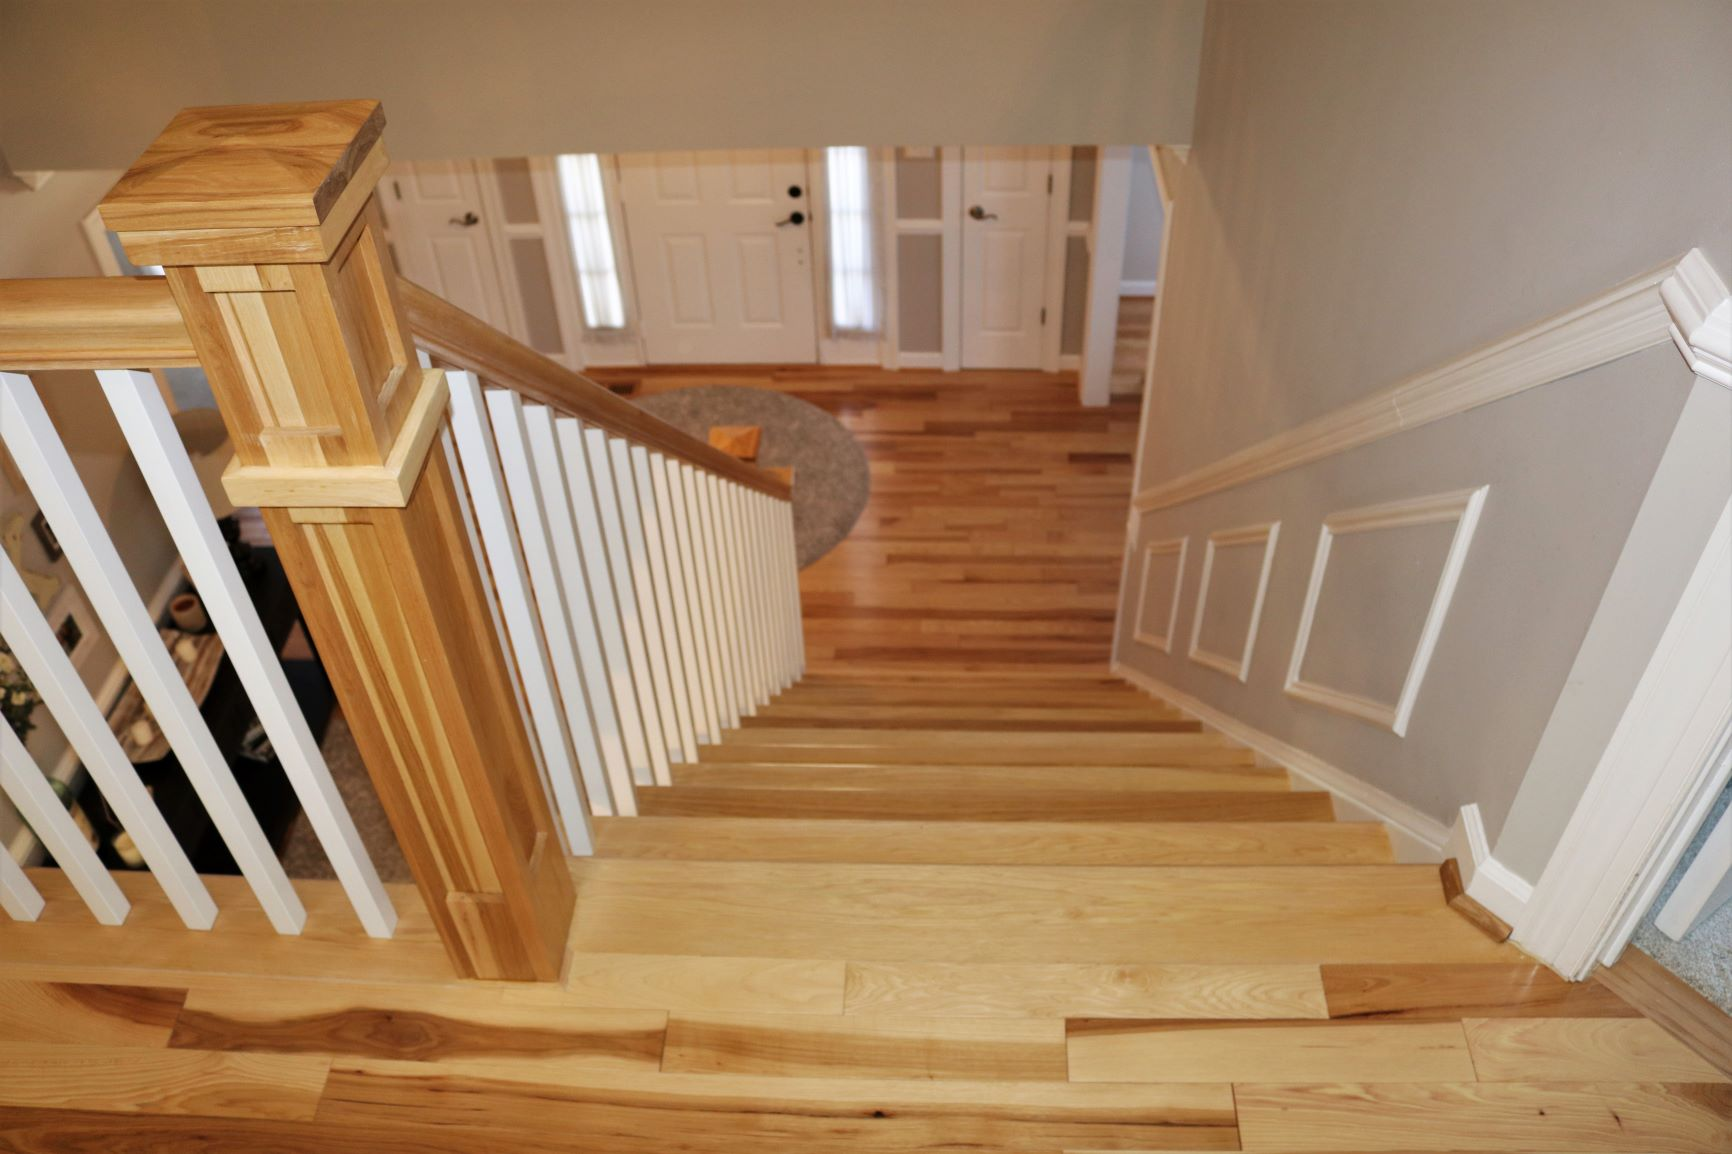 HickoryStairs-Full Remodel-ArlingtonVA-2